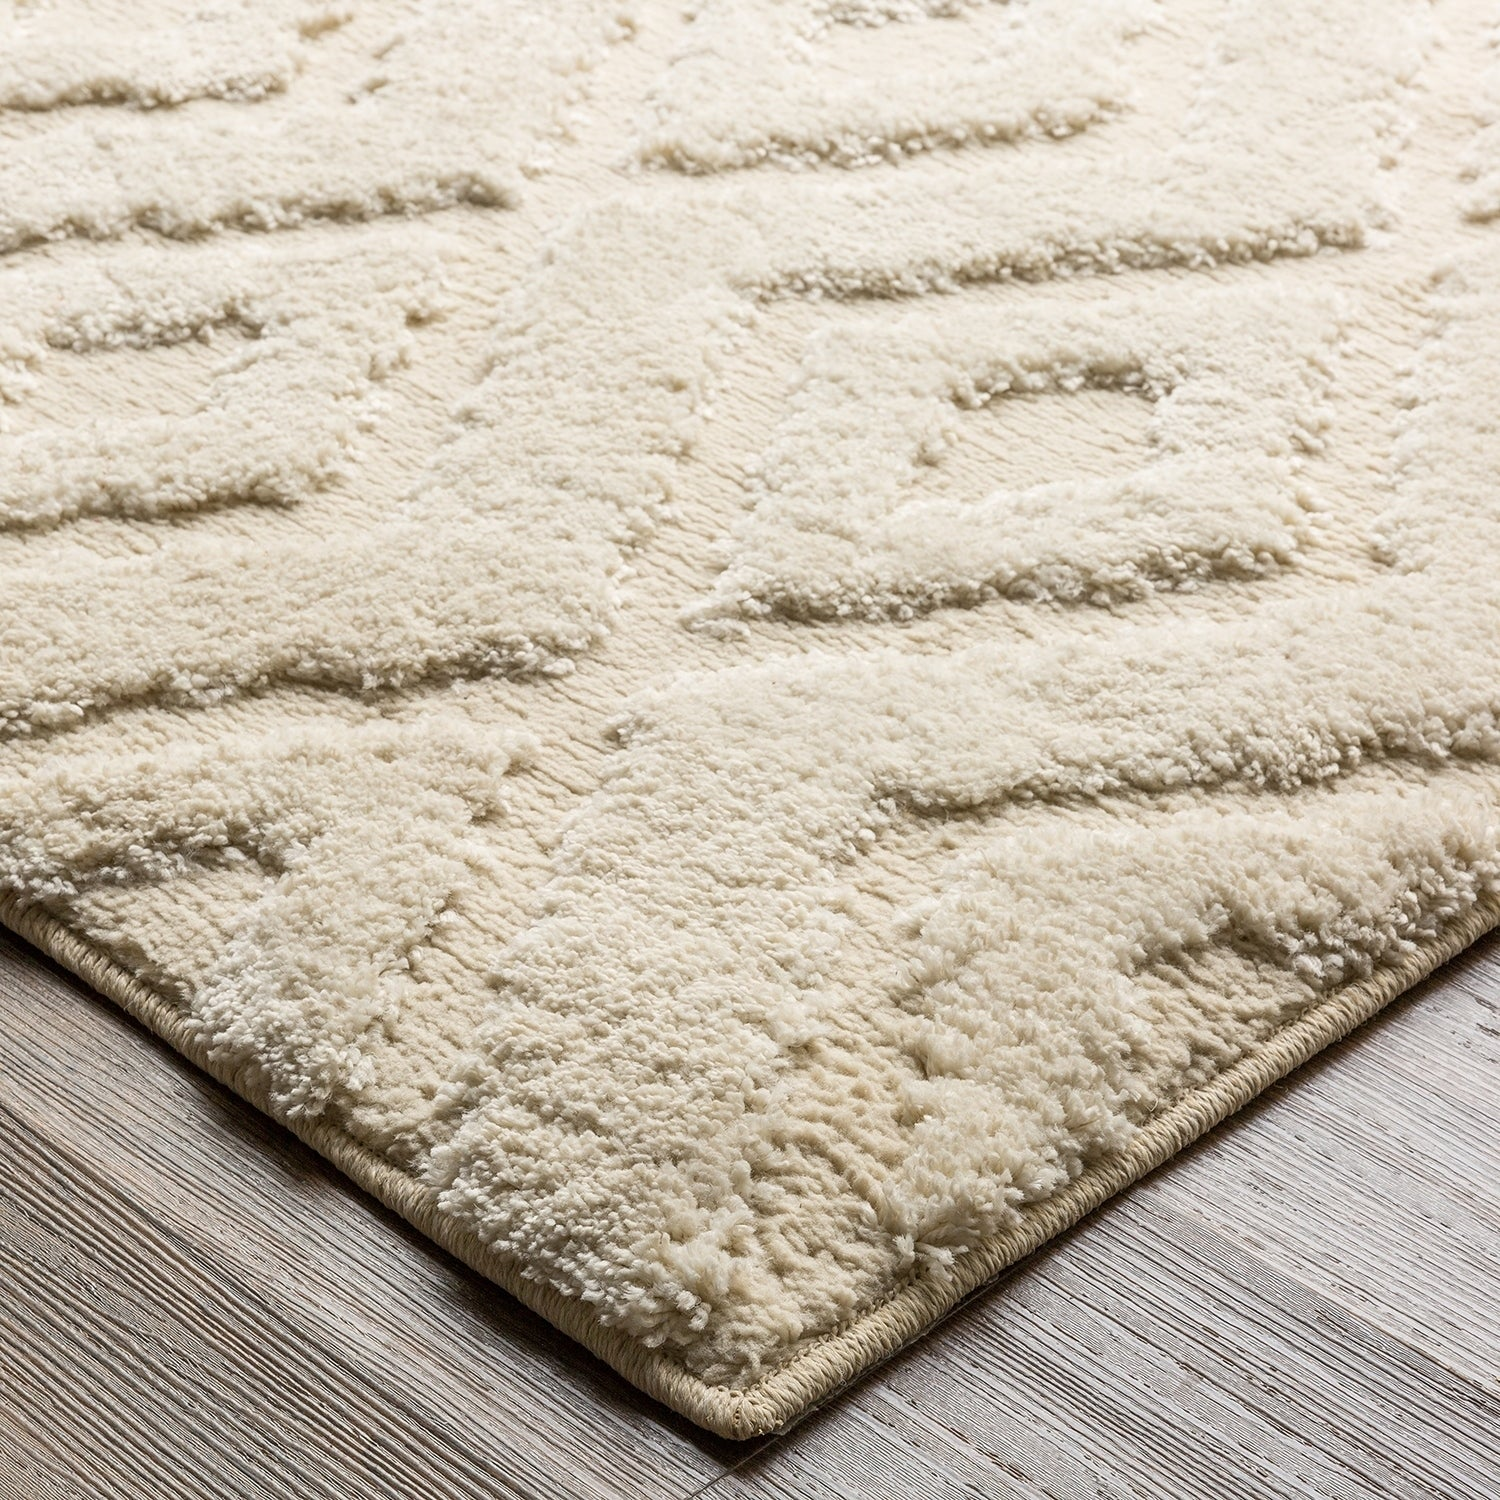 Mohawk Home Loft Hampshire Cream Area Rug 8 X 10 On Free Shipping Today 12223655